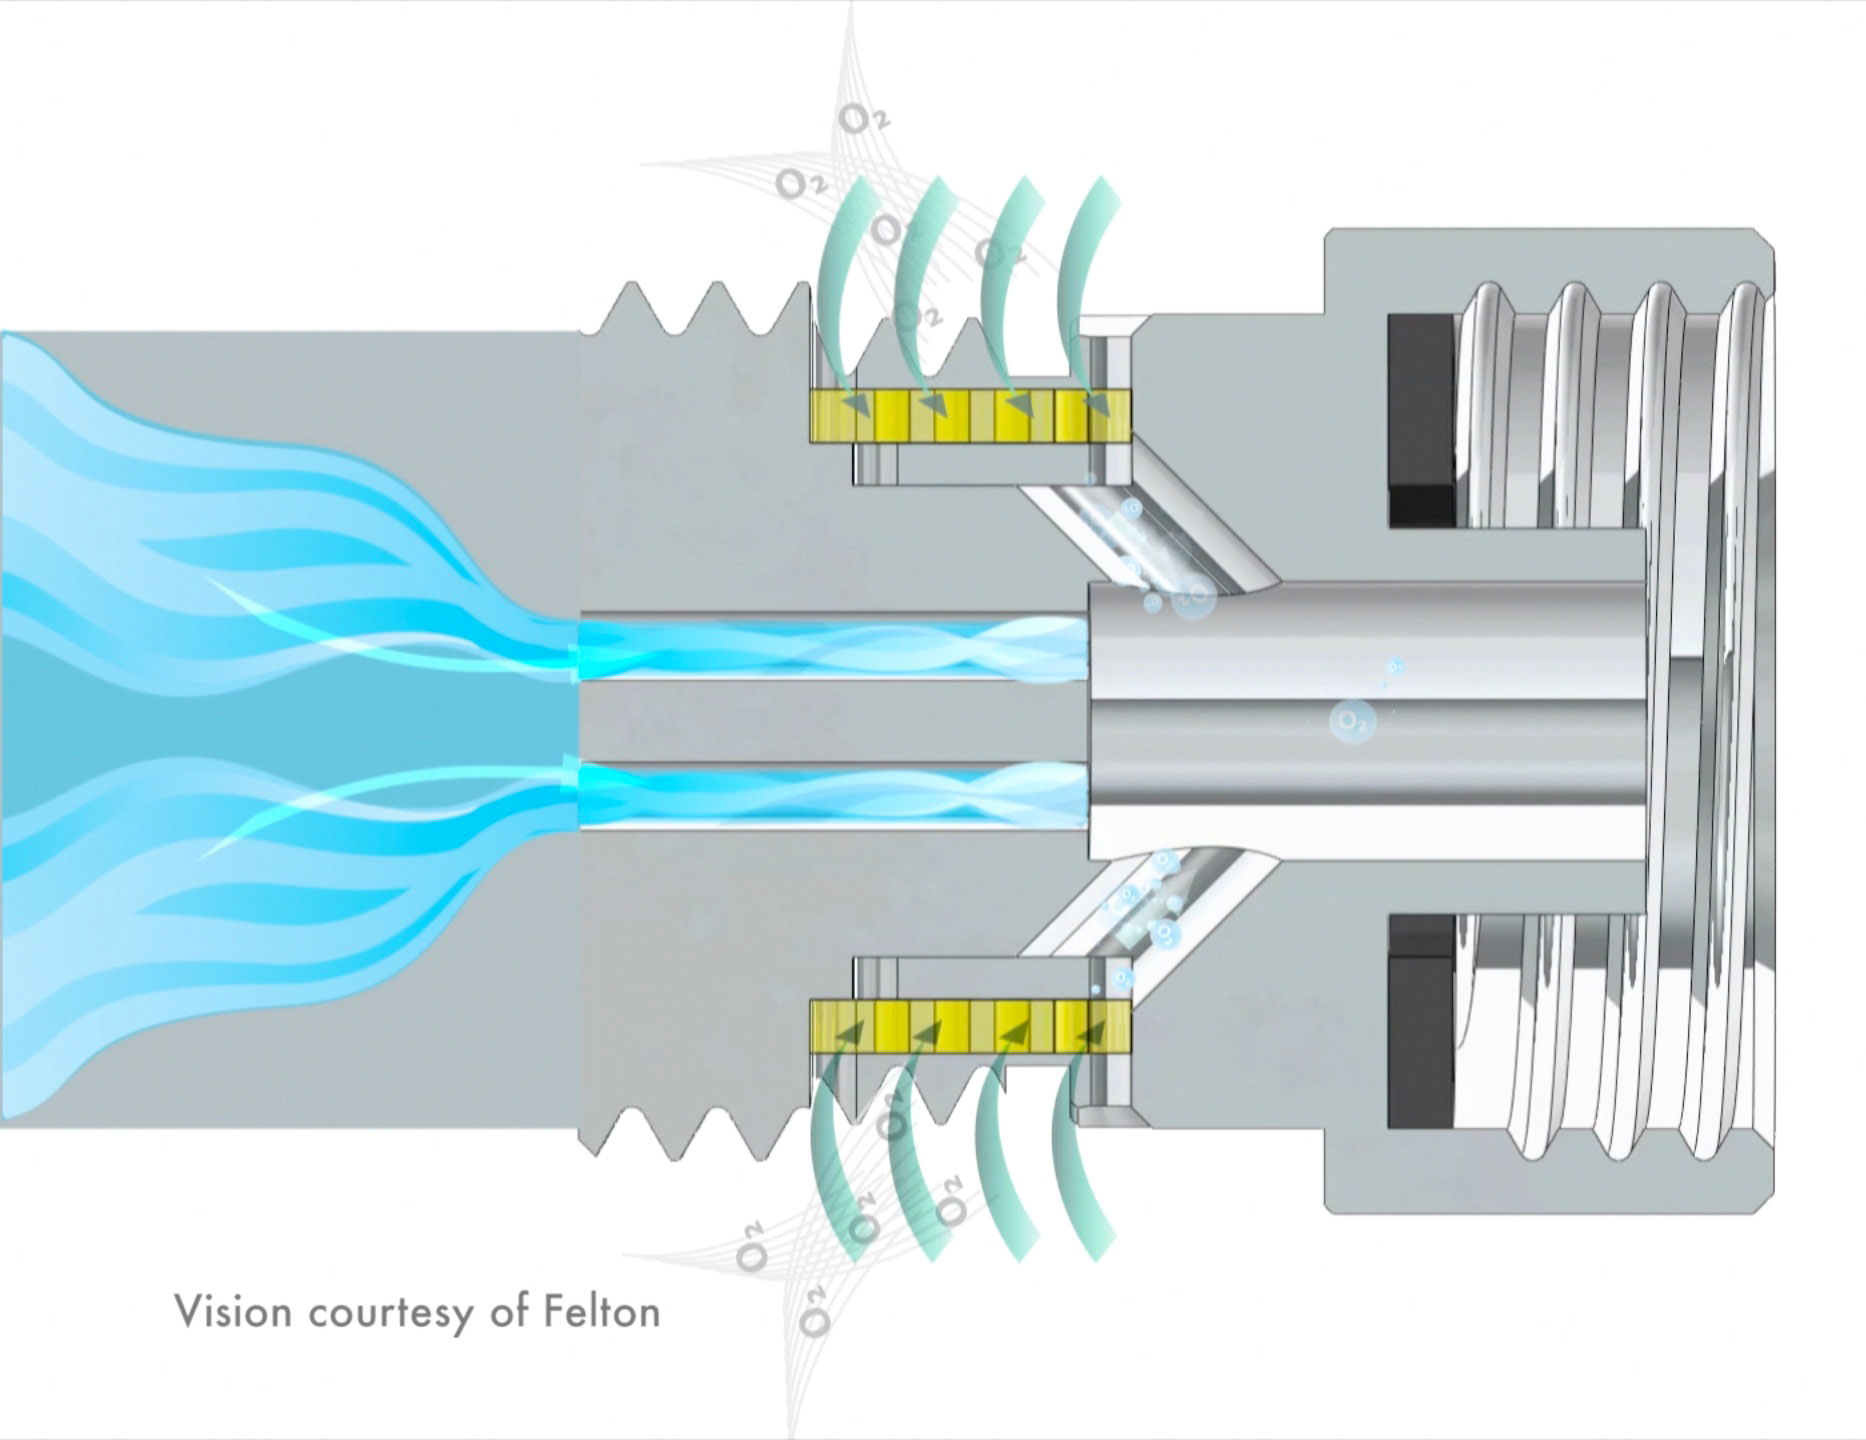 Diagram showing cross section of the Oxijet shower nozzle